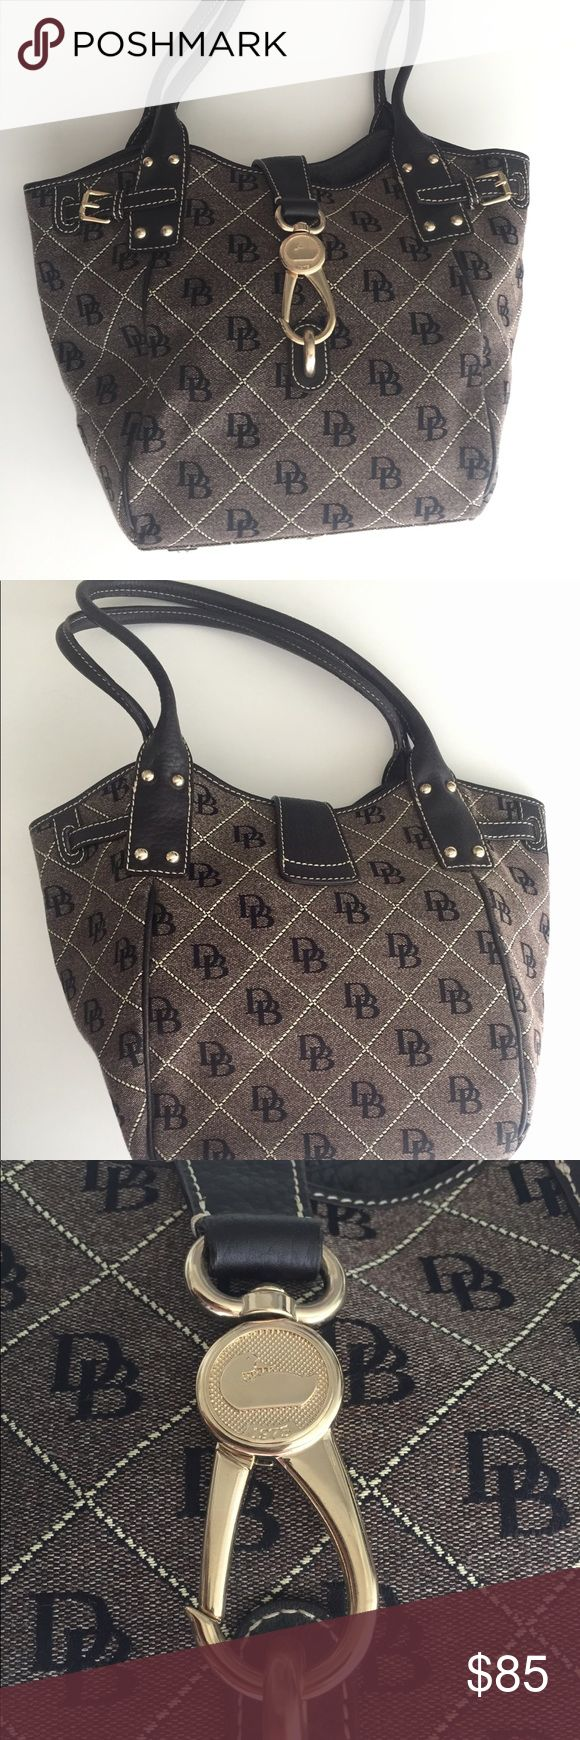 Dooney & Bourke tote bag purse dark brown black Brand new. Never used. Very sturdy high quality material. Dooney & Bourke purse with gold clasp. Can fit over the shoulder. Leather straps. Limited edition. Color: brown & dark brown exterior, light pink interior. Has one zipper pocket and one phone pouch inside. Dooney & Bourke Bags Totes